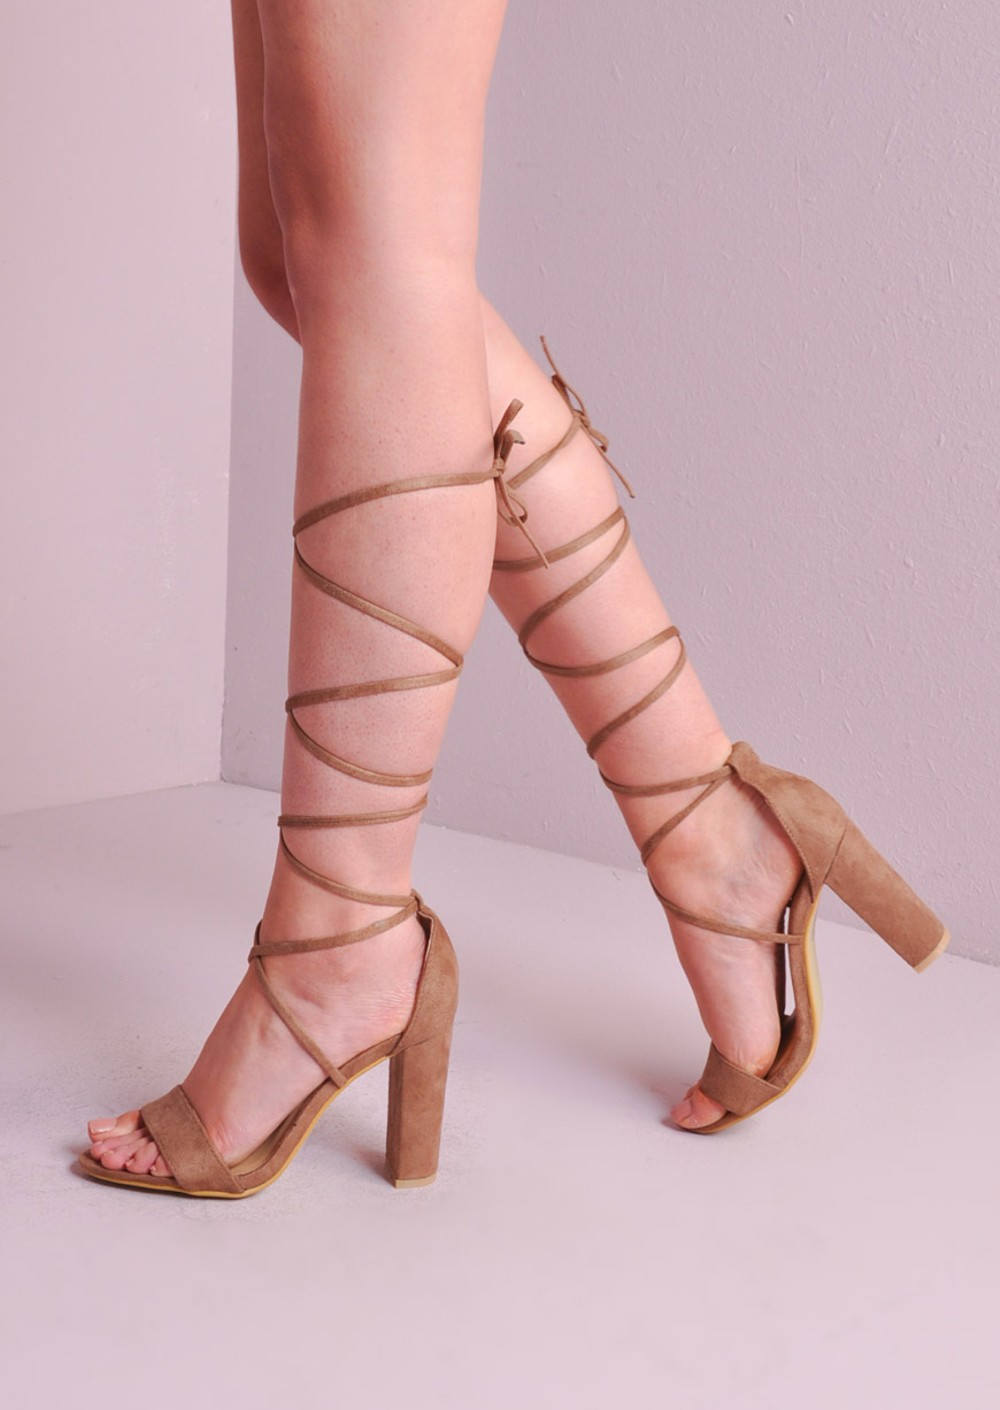 Lace Up Shoes | Lily Lulu Fashion